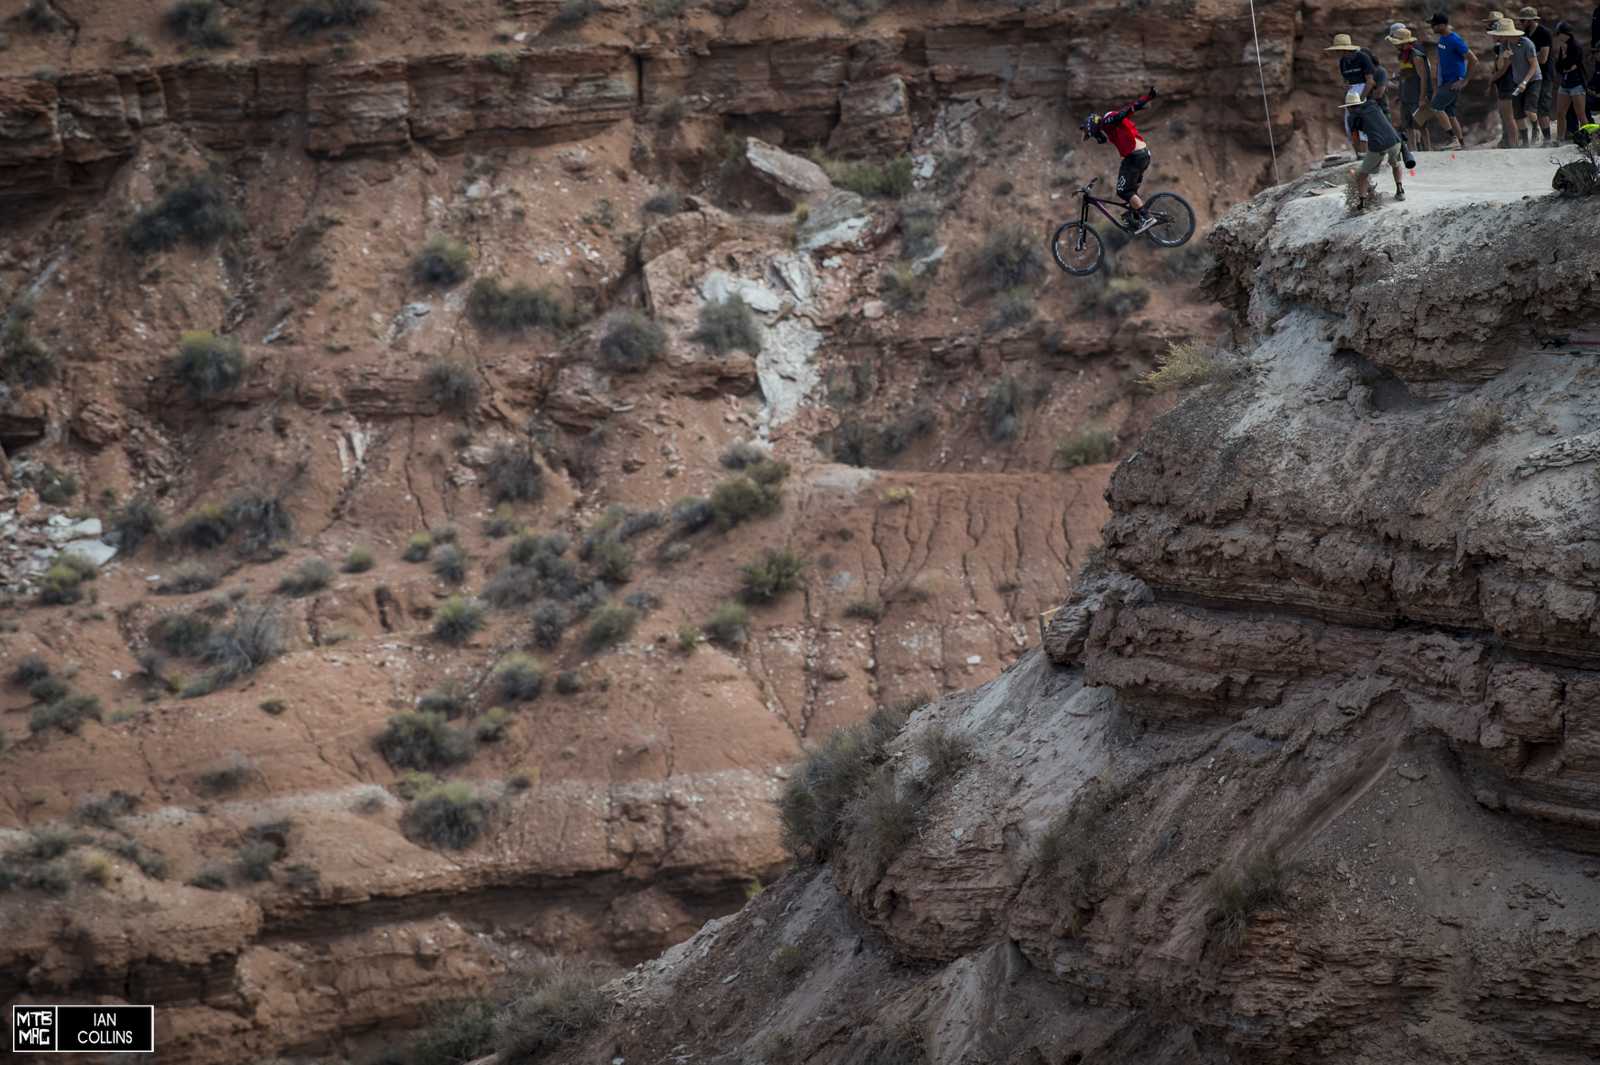 Lyle blasting a huge no hander off of the big drop at the bottom. Just like last year - but without the win.